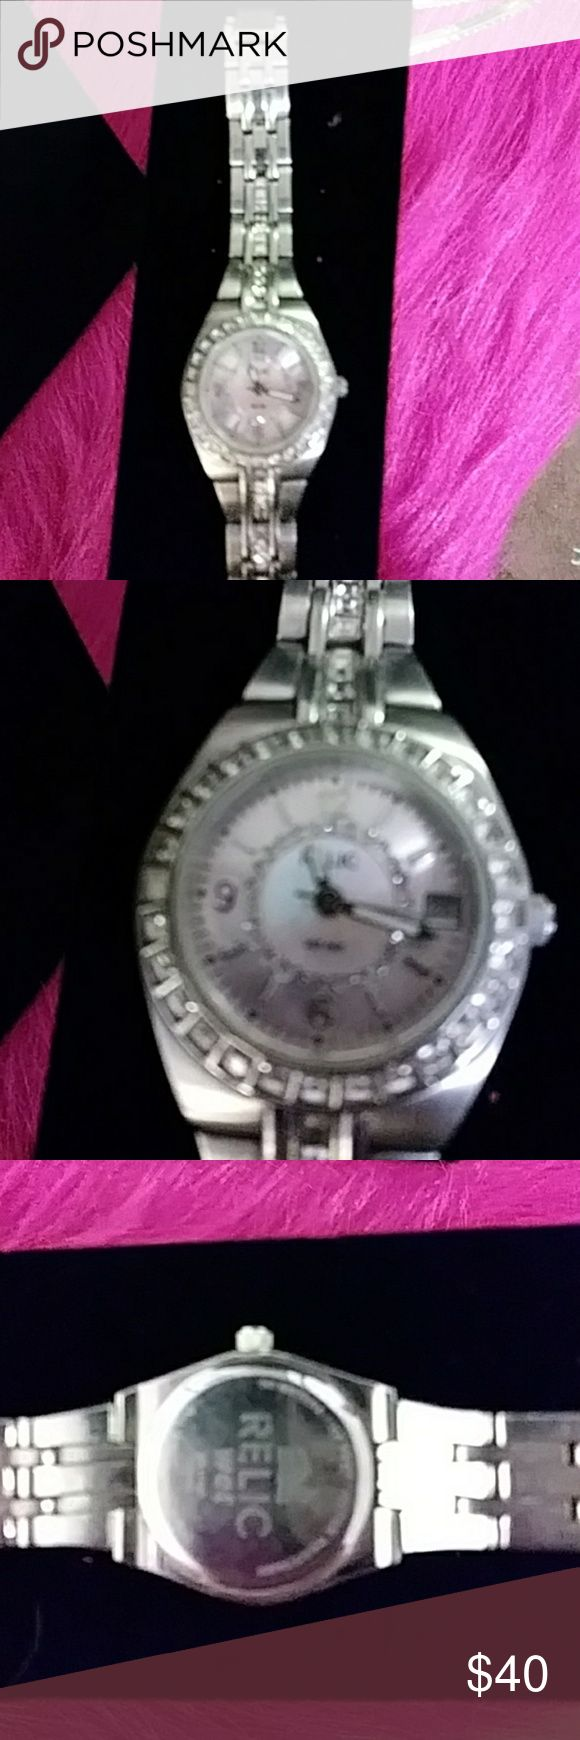 Fossil ladies watch Beautifual fossil watch stainless steel pink face sourrranded in diamonds Fossil Jewelry